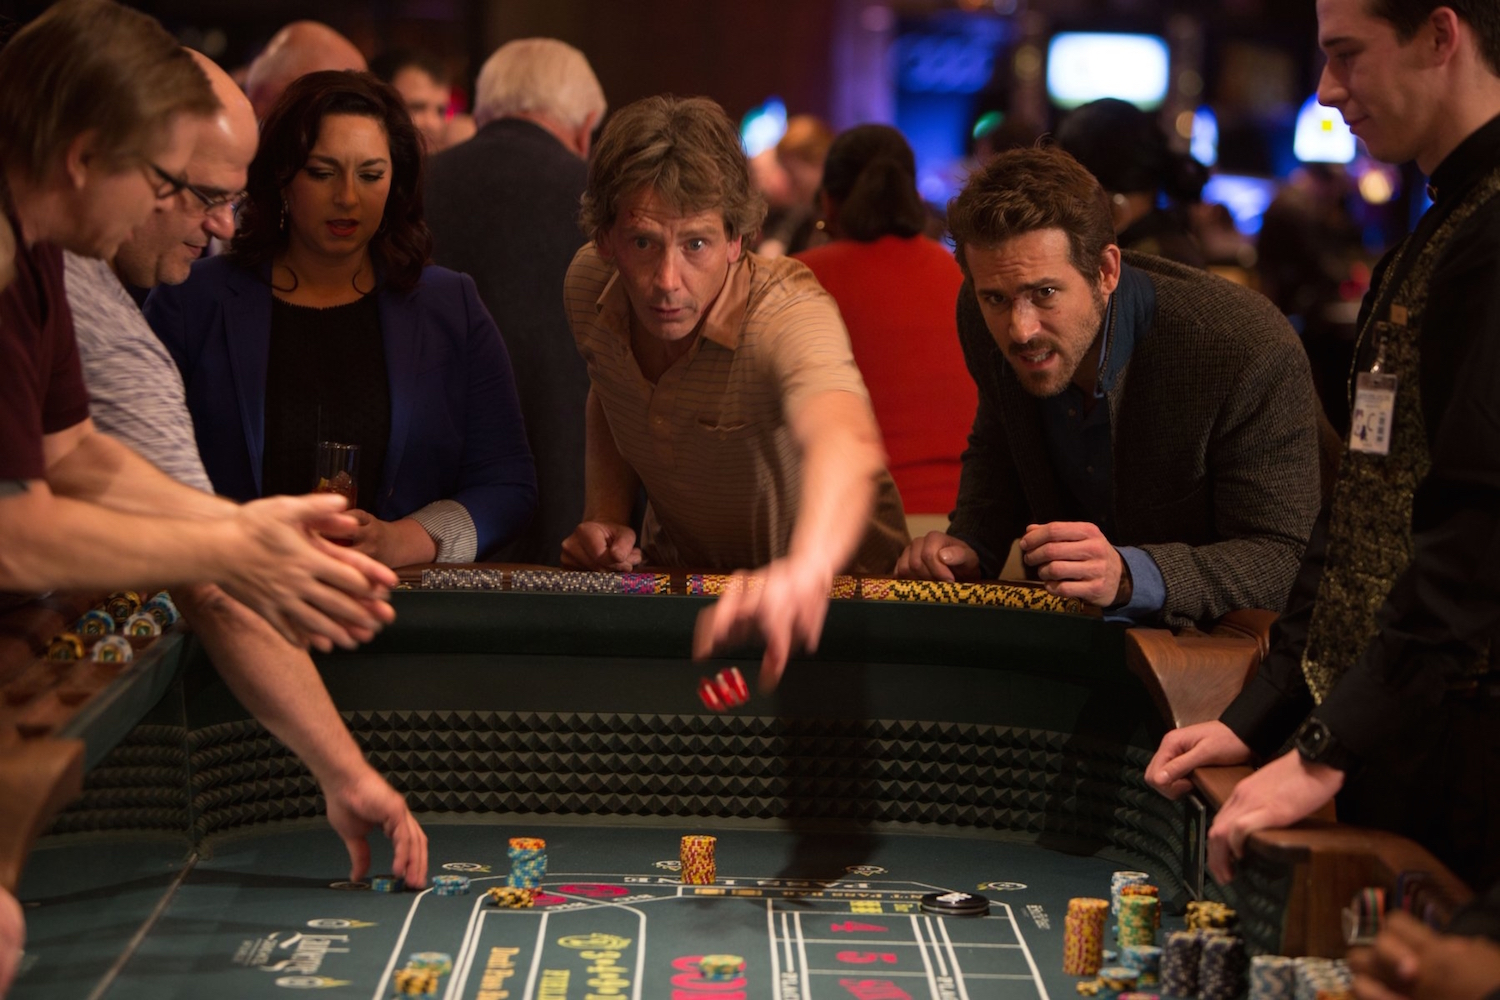 Watch TRAILER for MISSISSIPPI GRIND starring Ryan Reynolds & Ben Mendelsohn